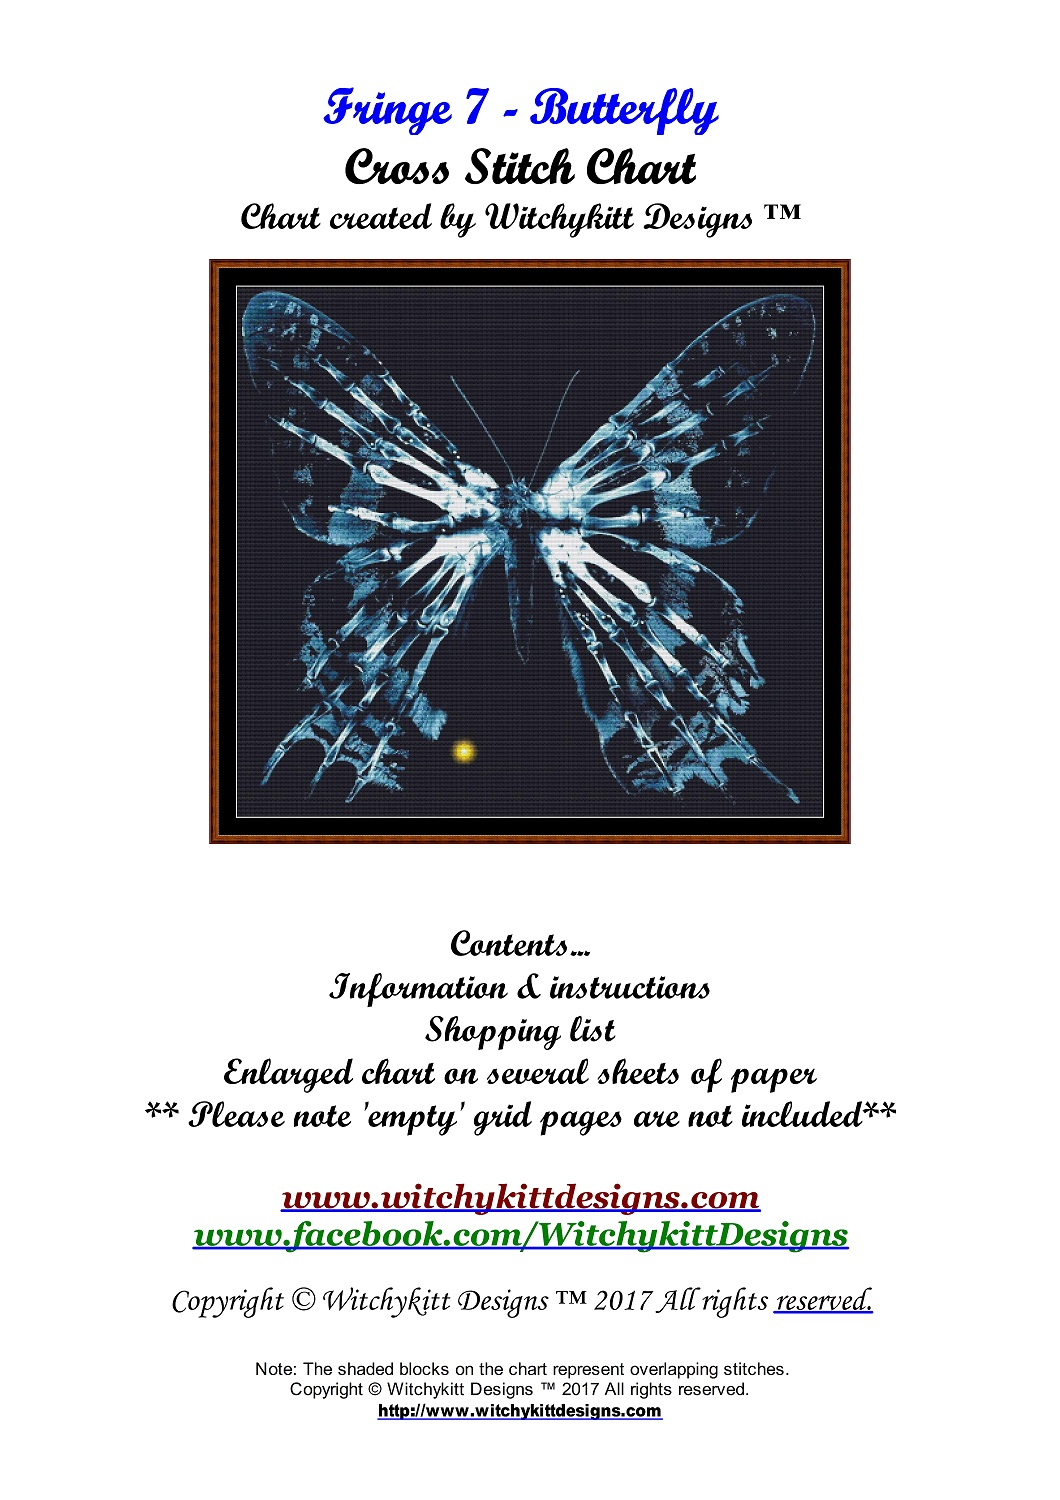 Fringe 7 - Butterfly Cross Stitch